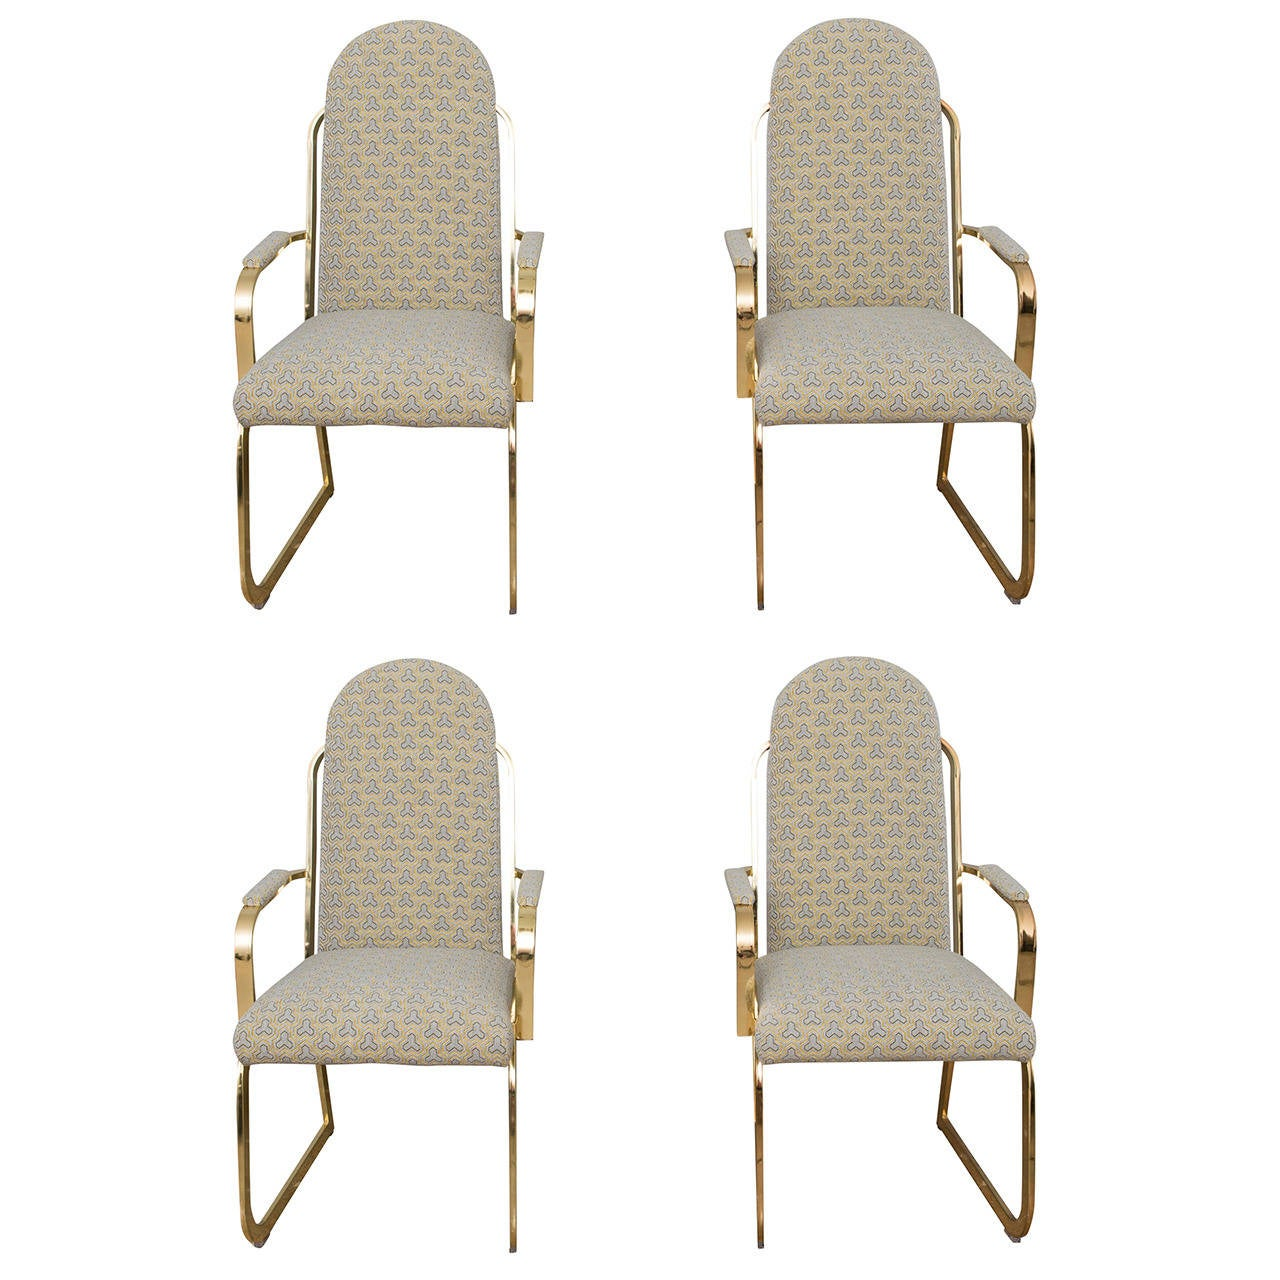 Four Brass High Back Dining Chairs in the Style of Milo Baughman